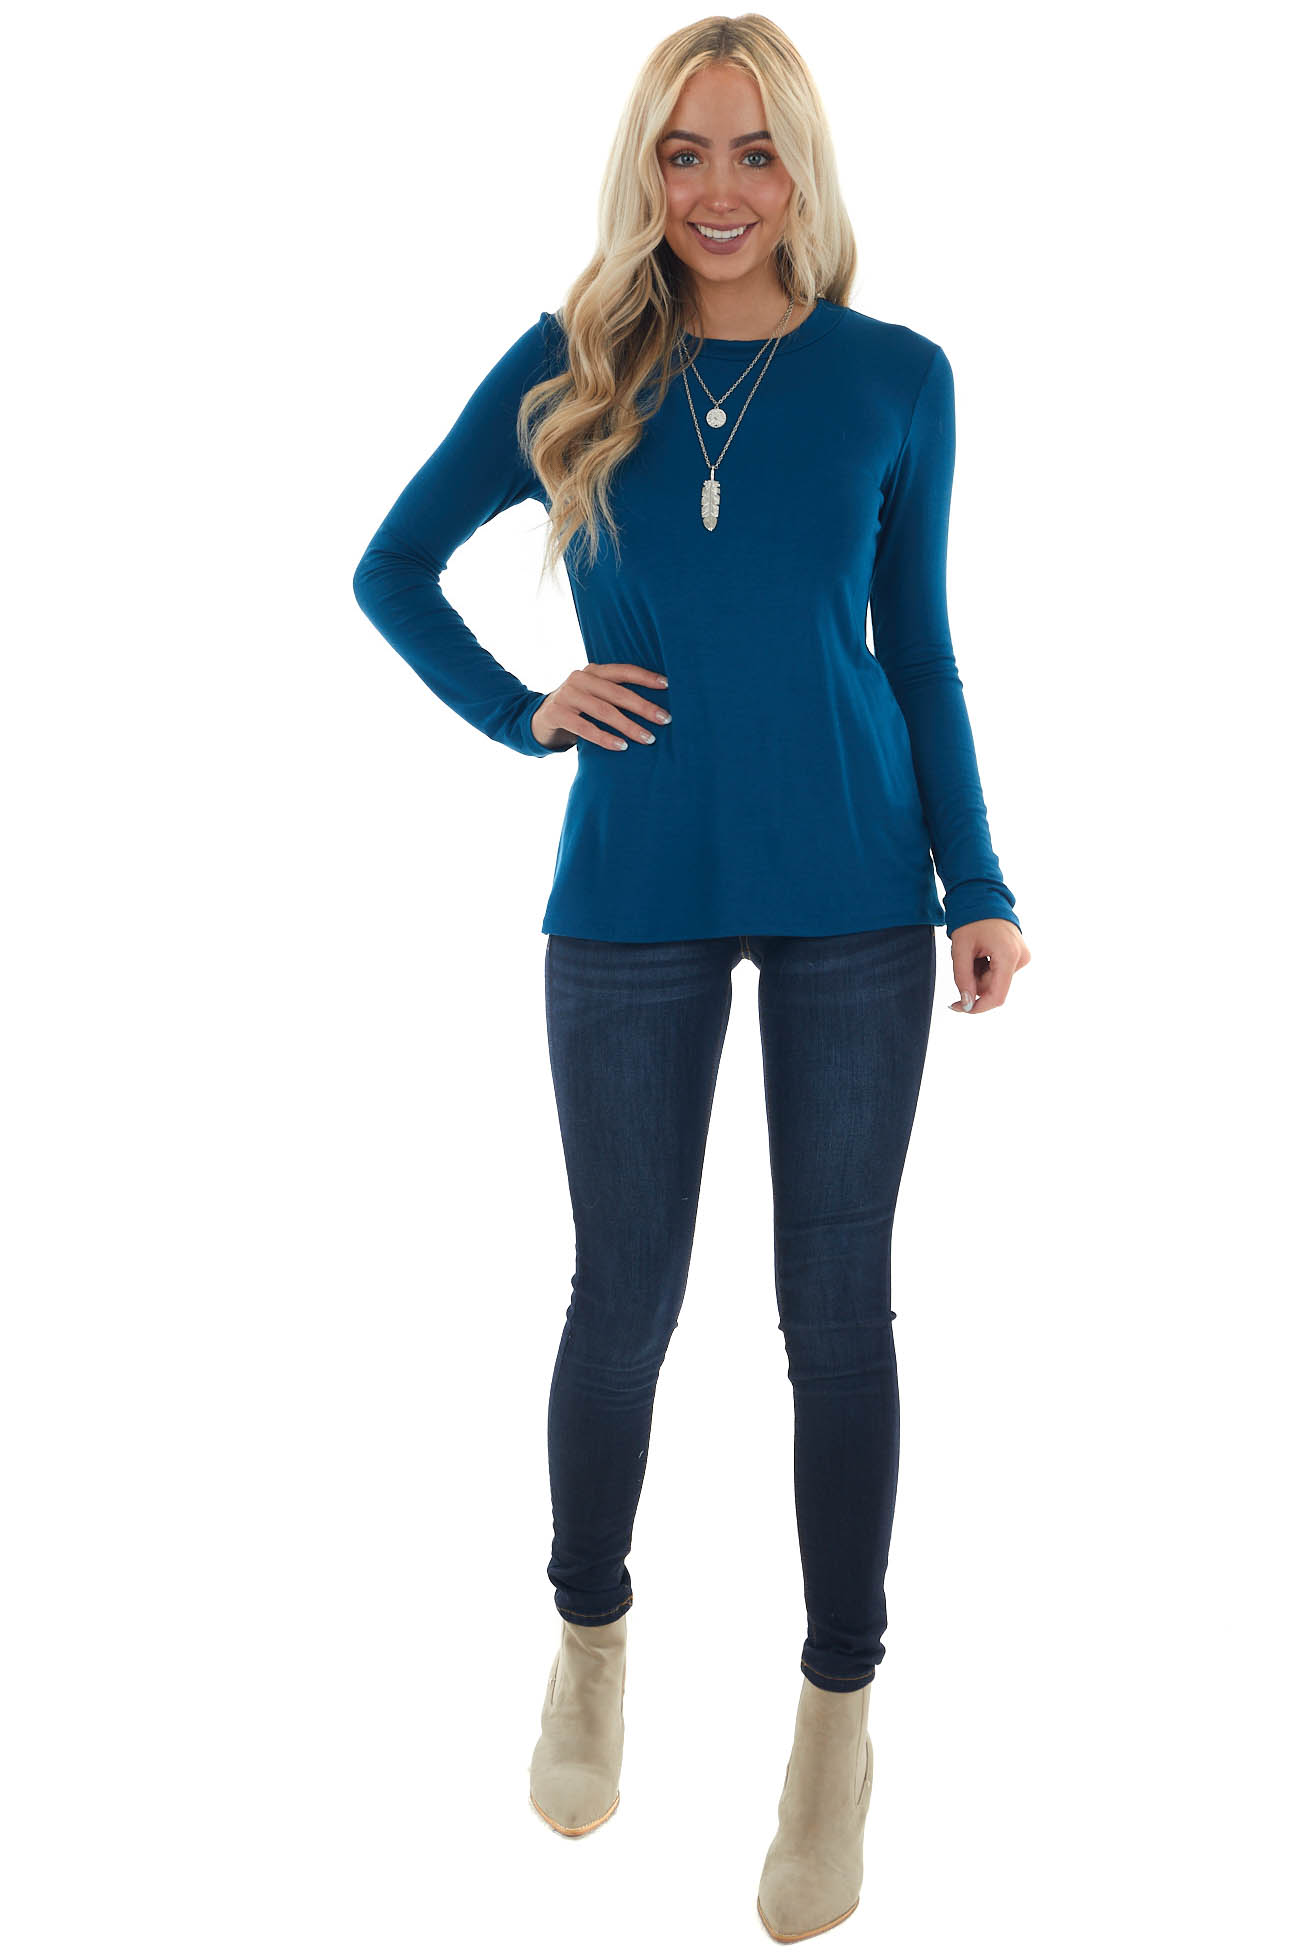 Sea Blue Laser Cut Out Back Long Sleeve Top